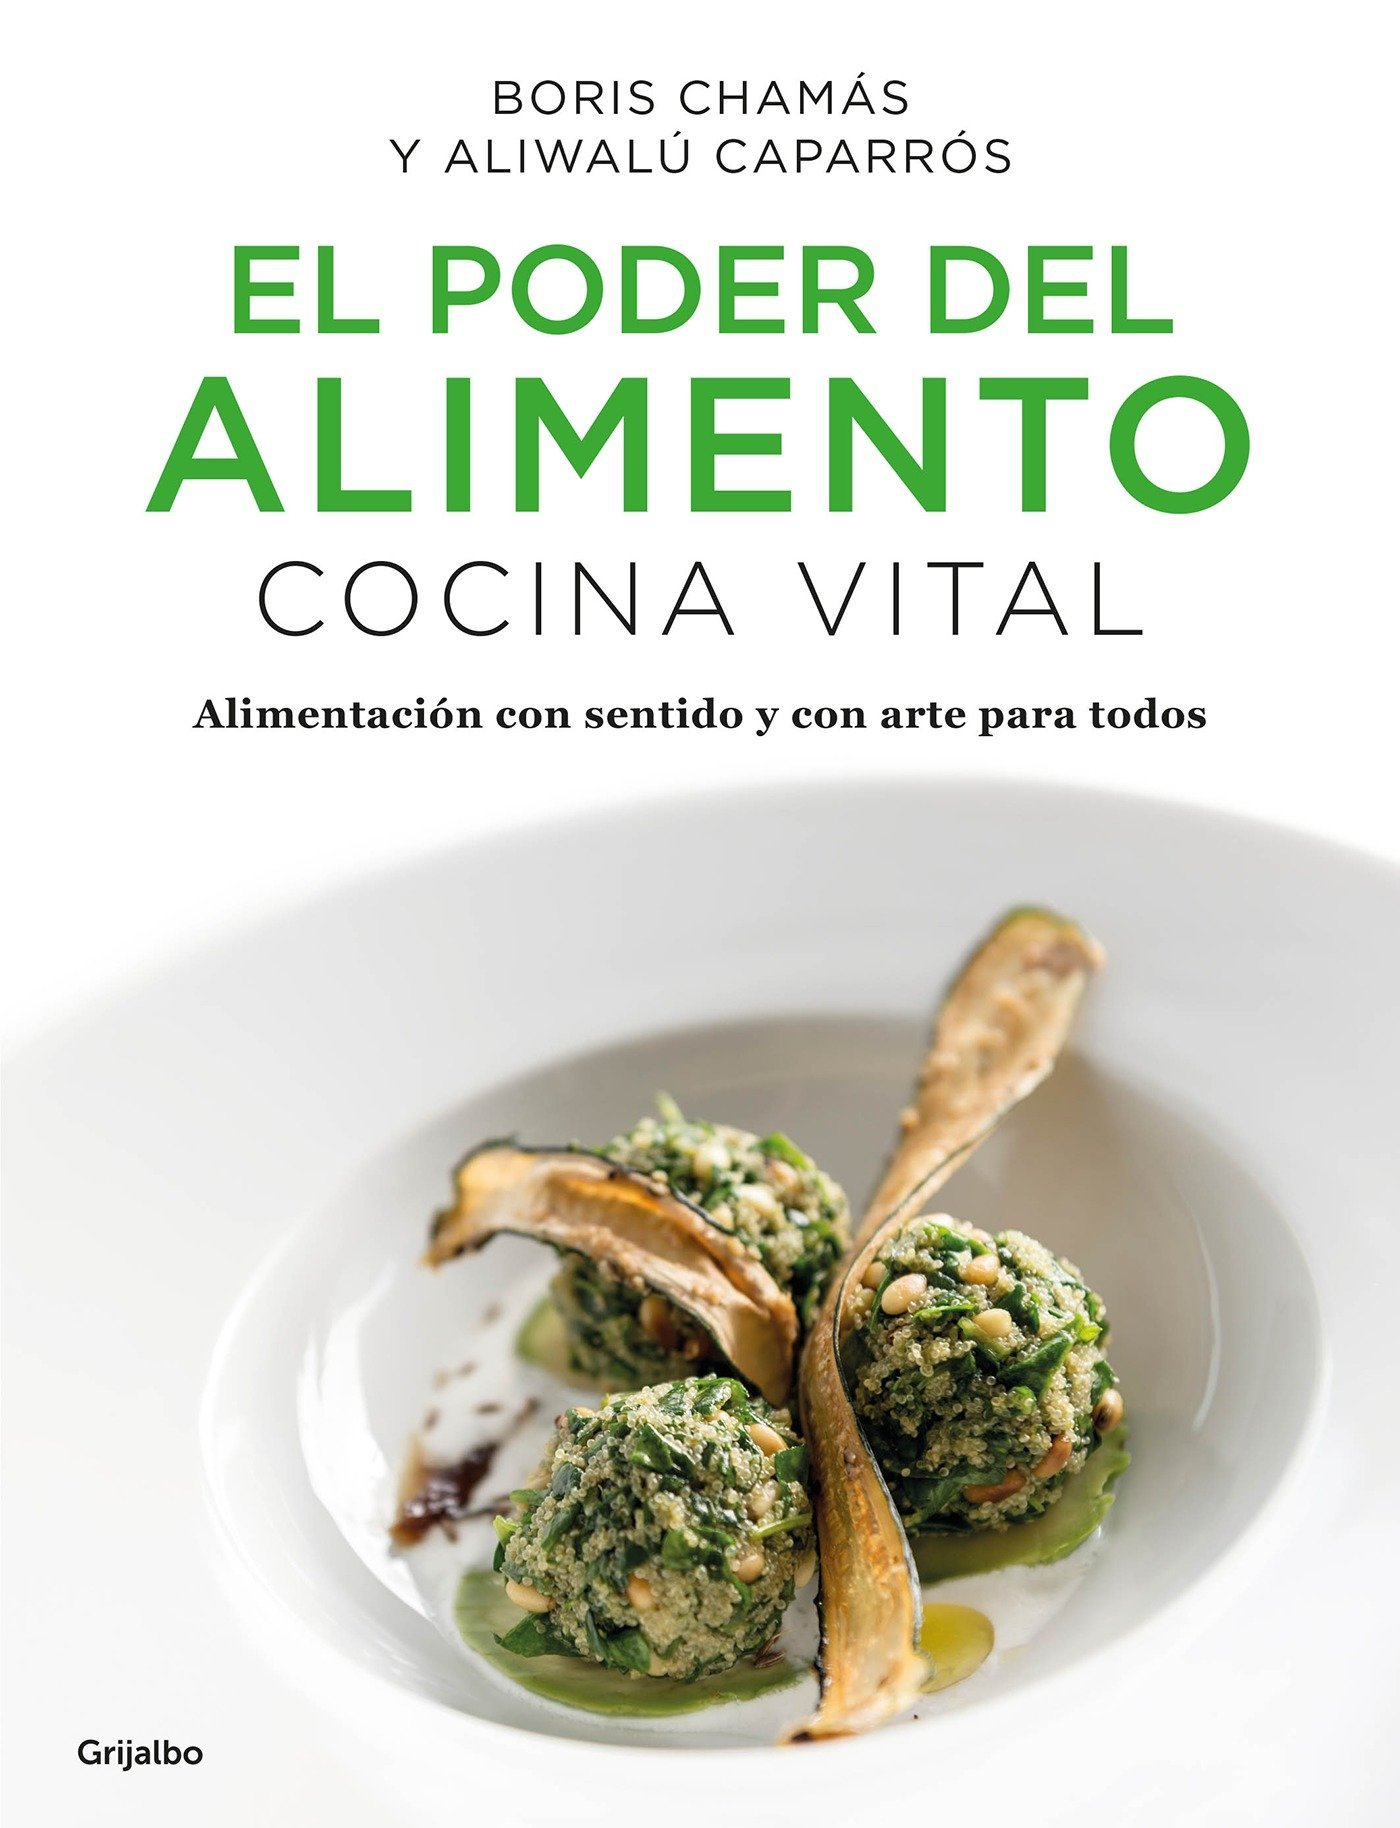 El Poder del Alimento. Cocina Vital / The Power of Food: Vital Cuisine: Amazon.es: Boris Chamas, Aliwalu Caparros: Libros